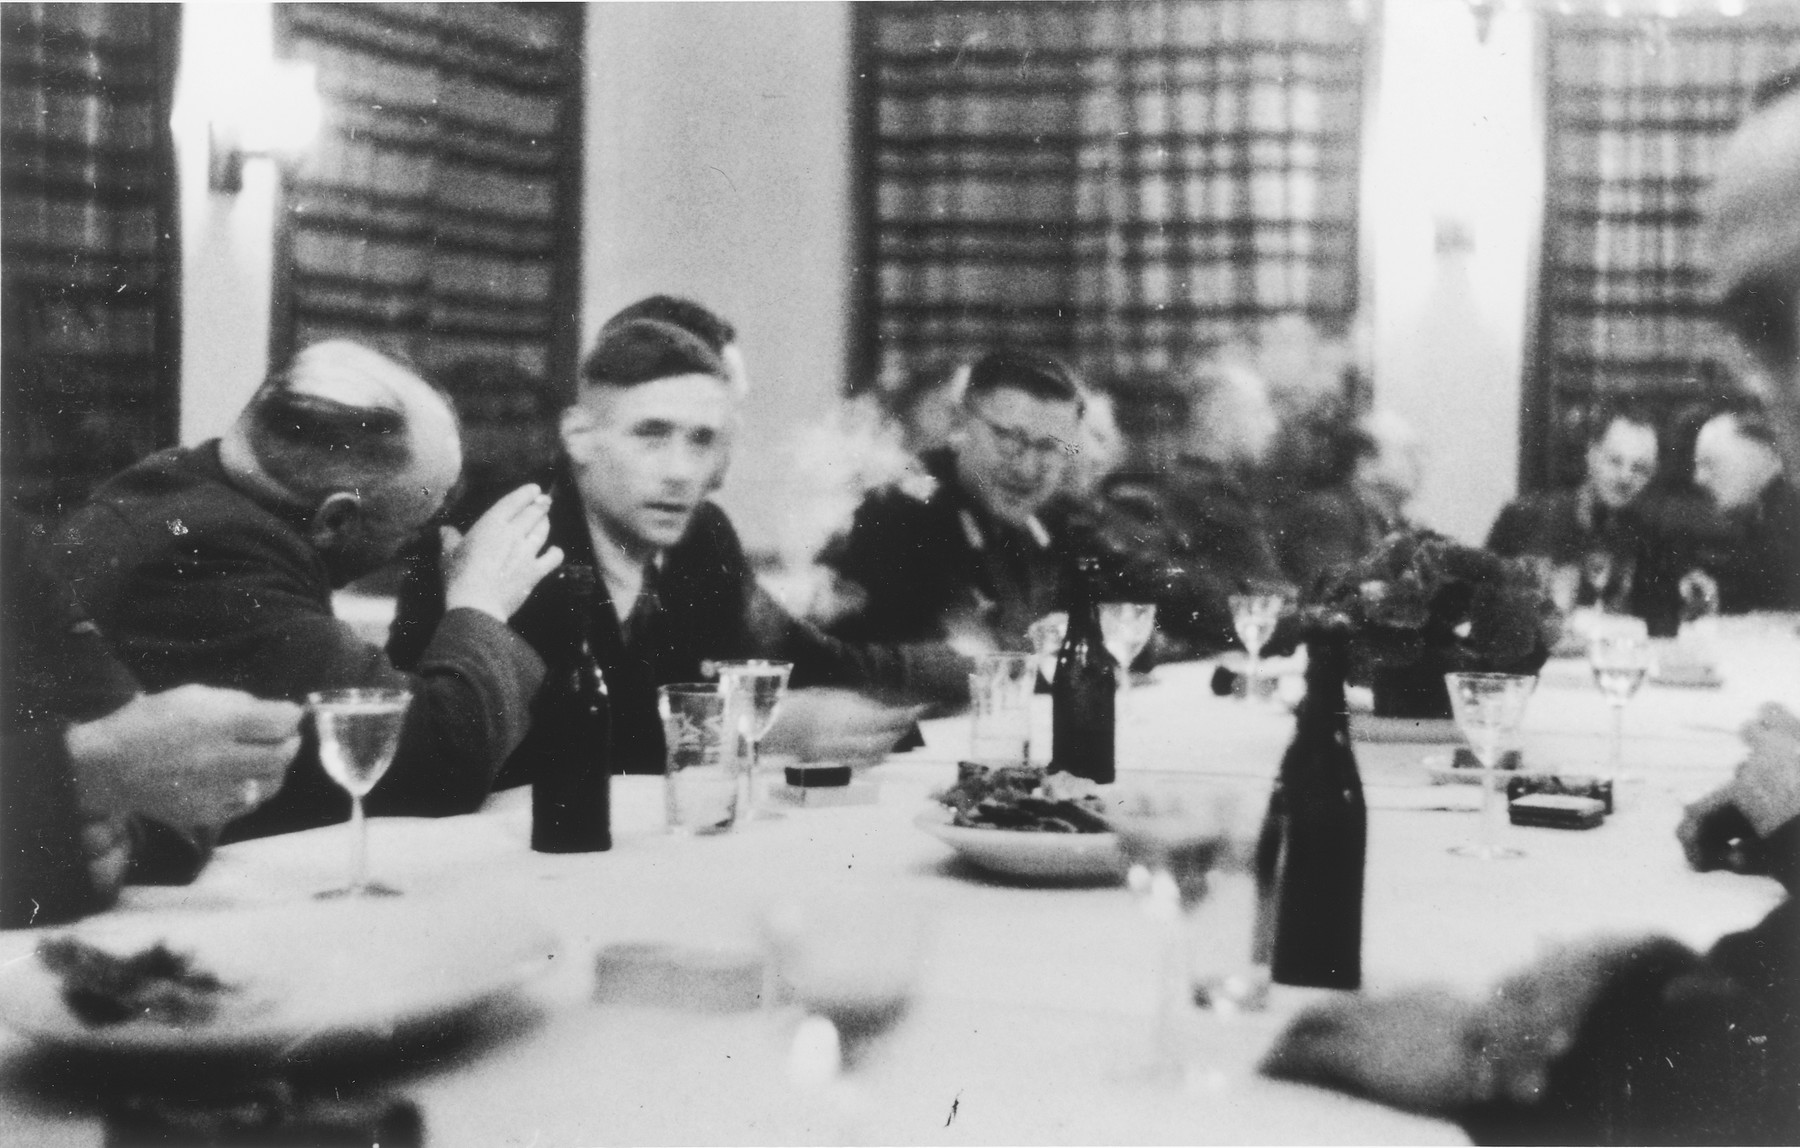 SS officers gather for drinks in a hunting lodge.  Among those pictured is Heinrich Josten (head of the table, right).